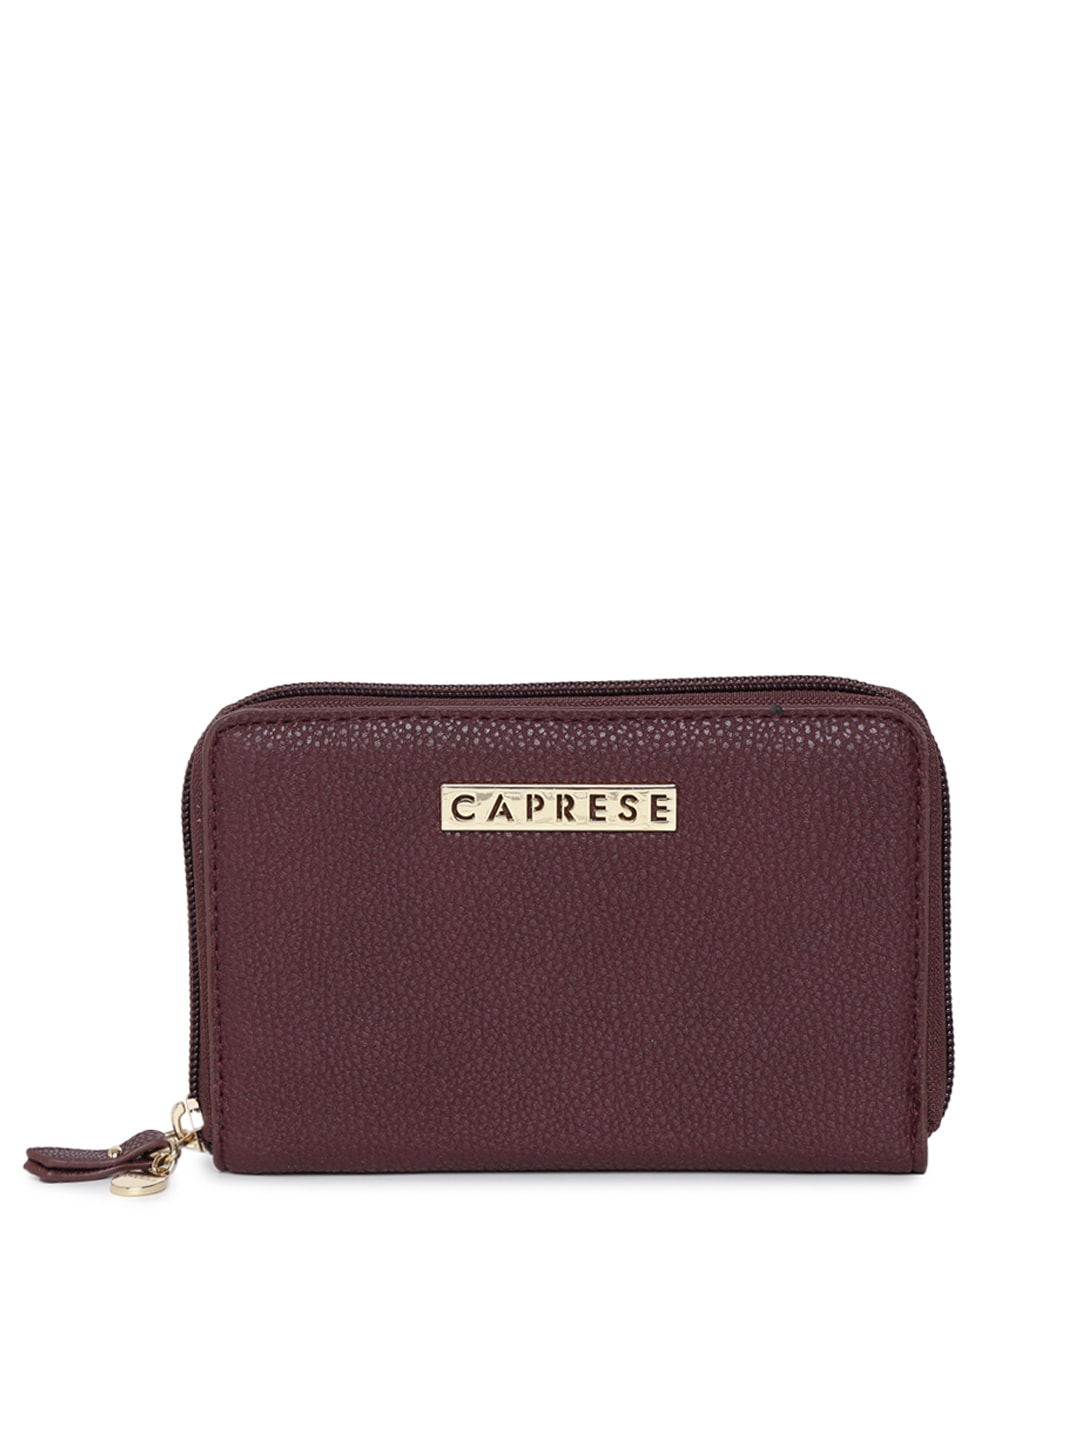 2bf768e9394cf1 Women Bags 2 Blazers Wallets - Buy Women Bags 2 Blazers Wallets online in  India